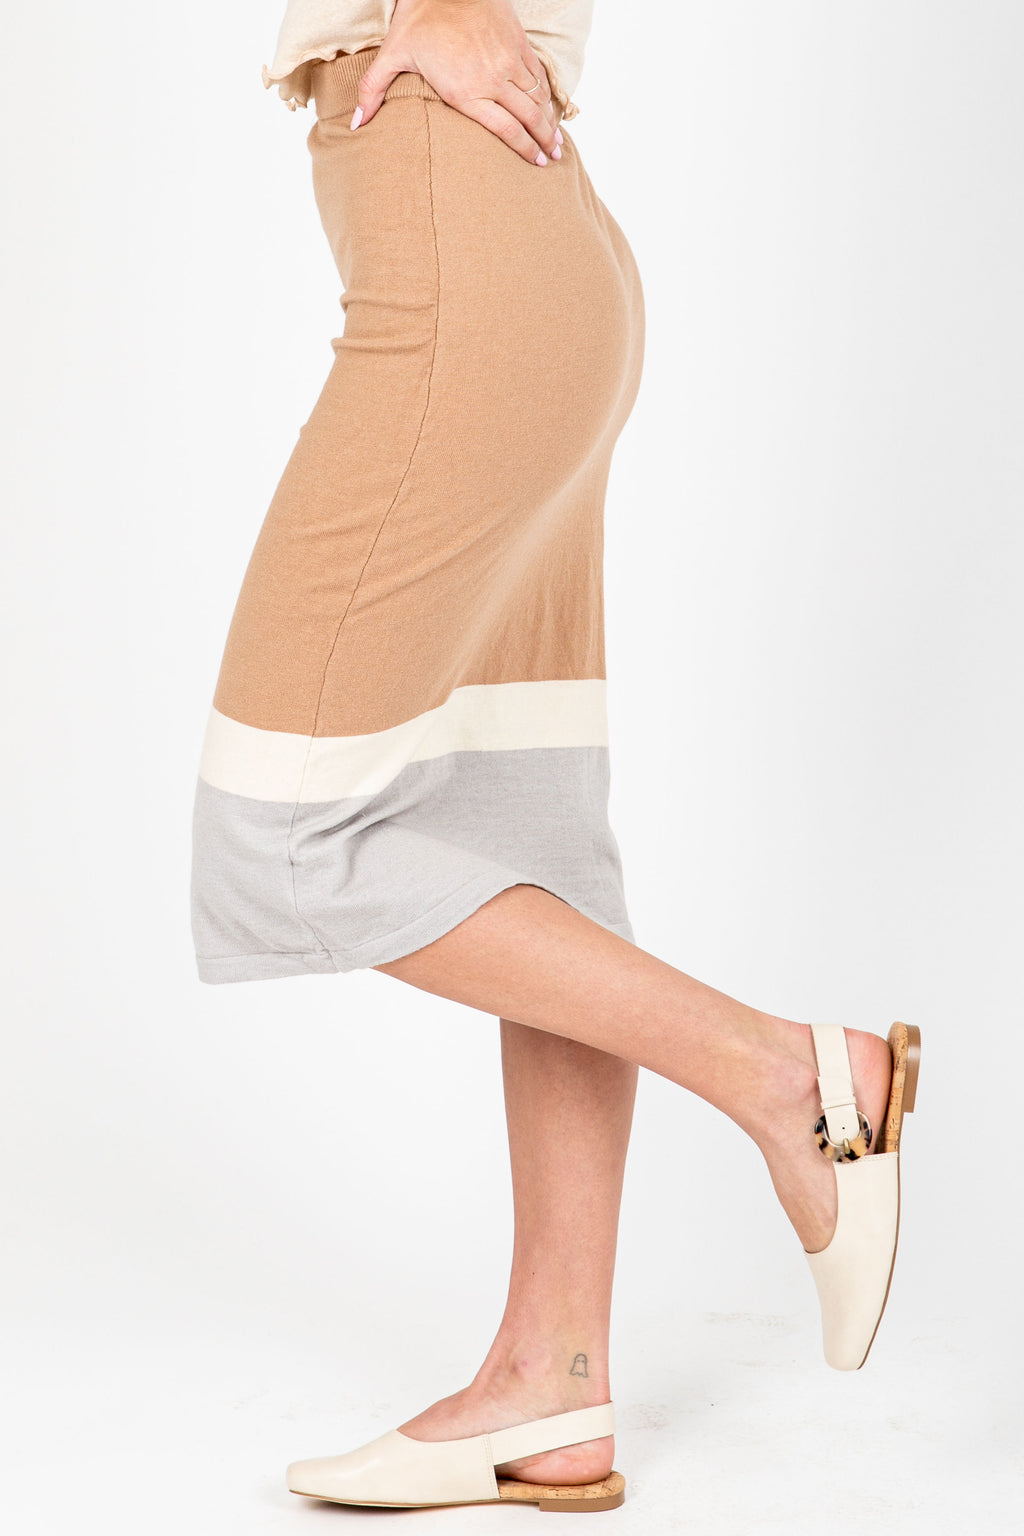 The Ross Striped Knit Skirt in Taupe, studio shoot; side view